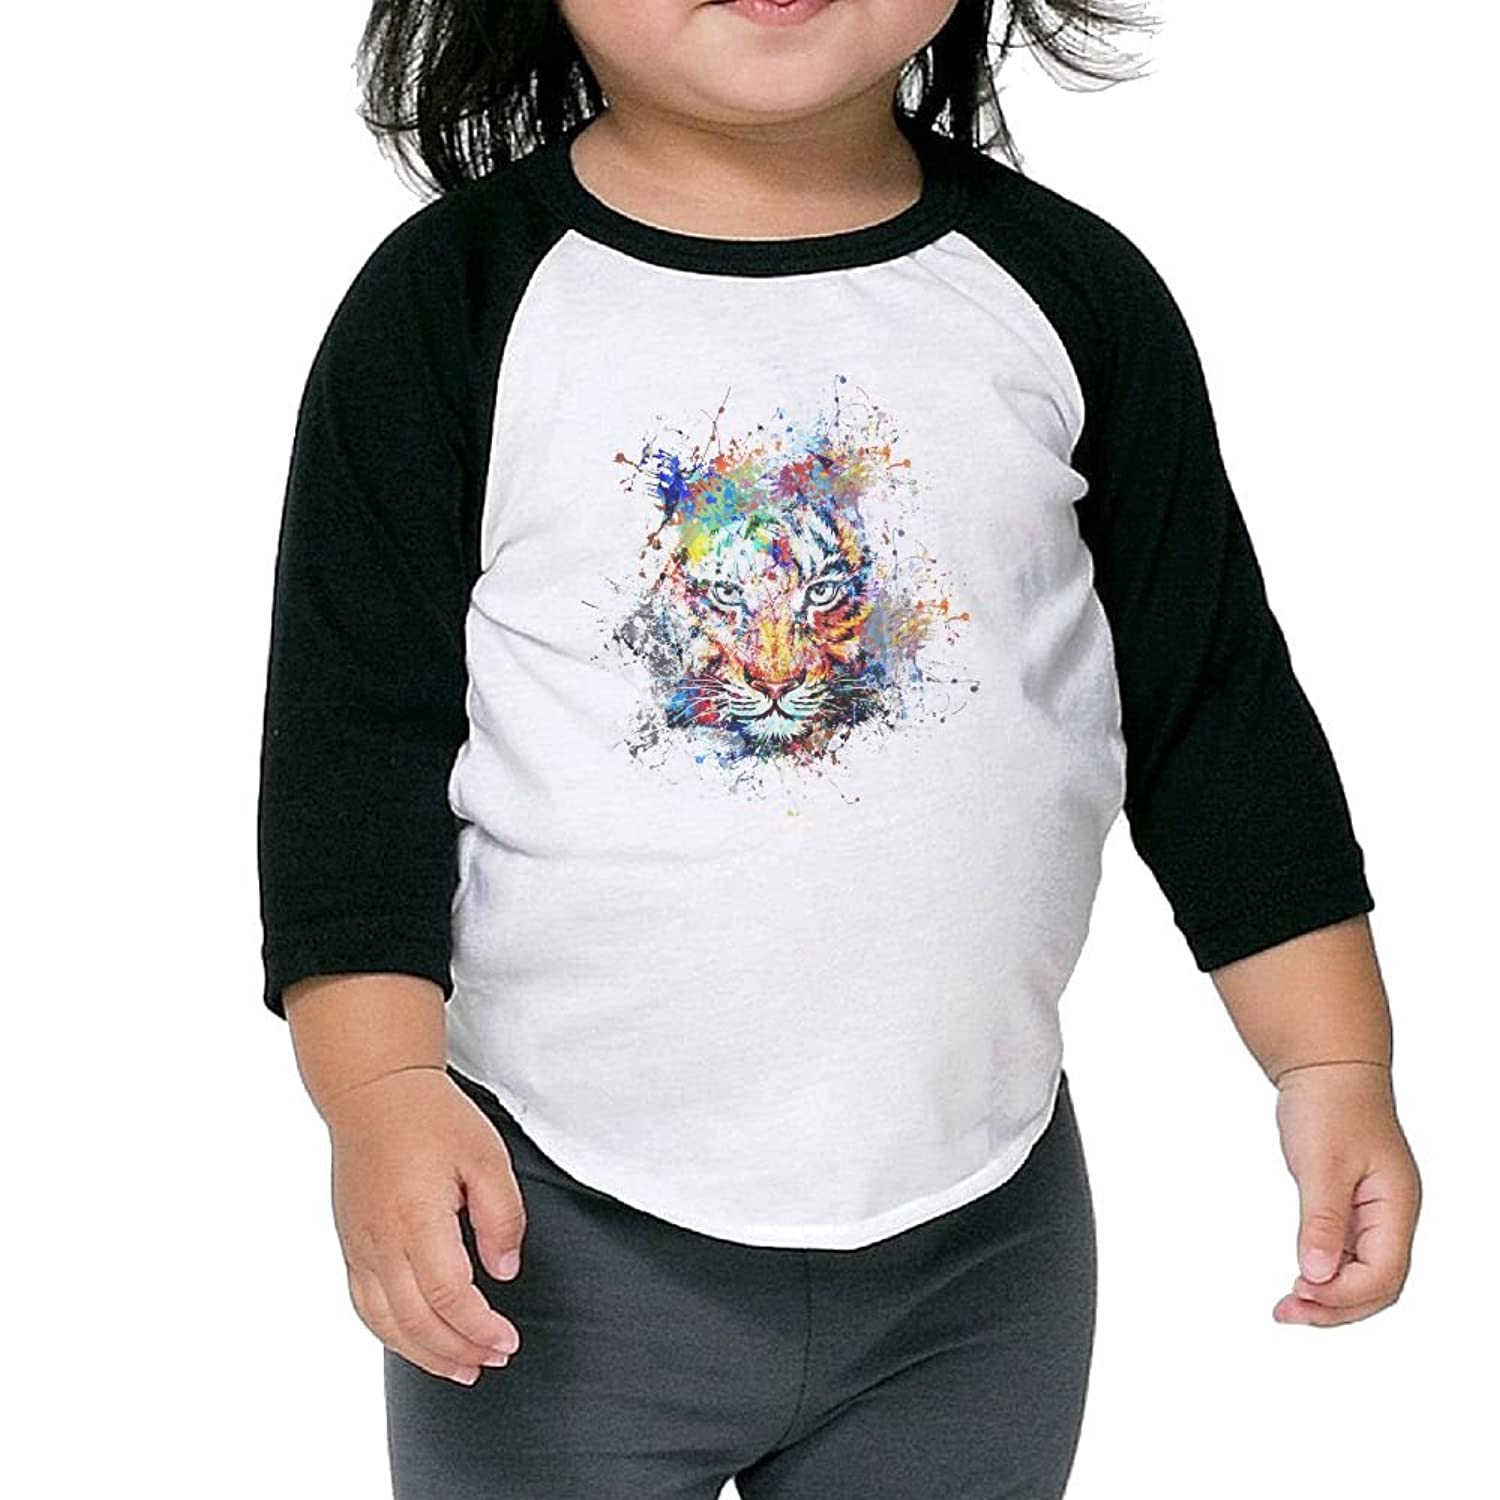 Cheap CHENLY Unisex Kid's Sleeves Soft Watercolor Tiger colorful Cotton 3/4 Sleeves T-Shirt For Girl